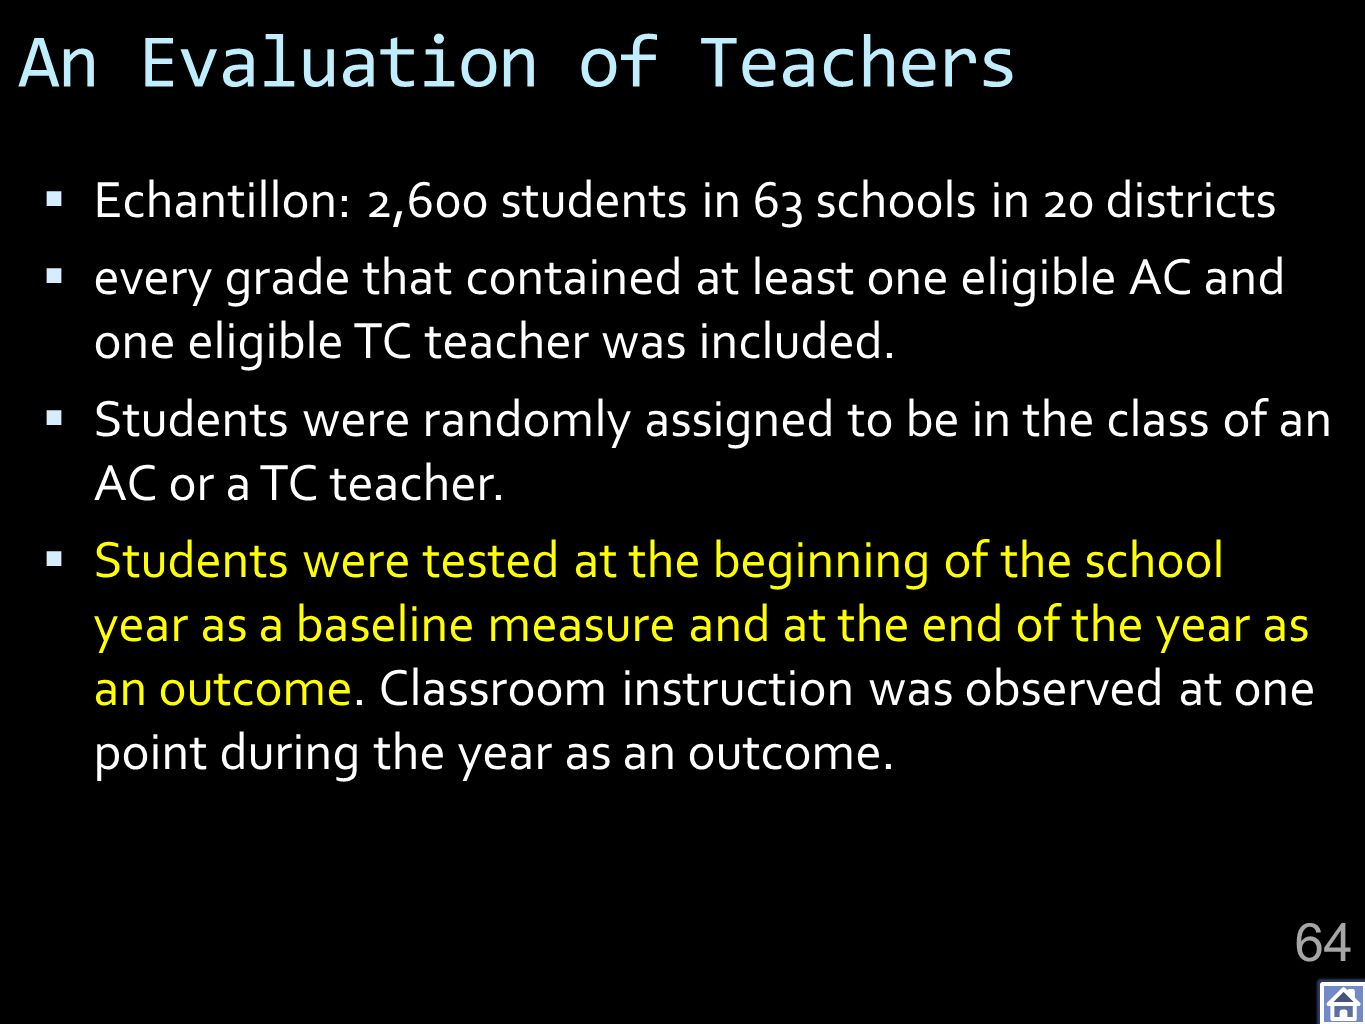 An Evaluation of Teachers Echantillon: 2,600 students in 63 schools in 20 districts every grade that contained at least one eligible AC and one eligib